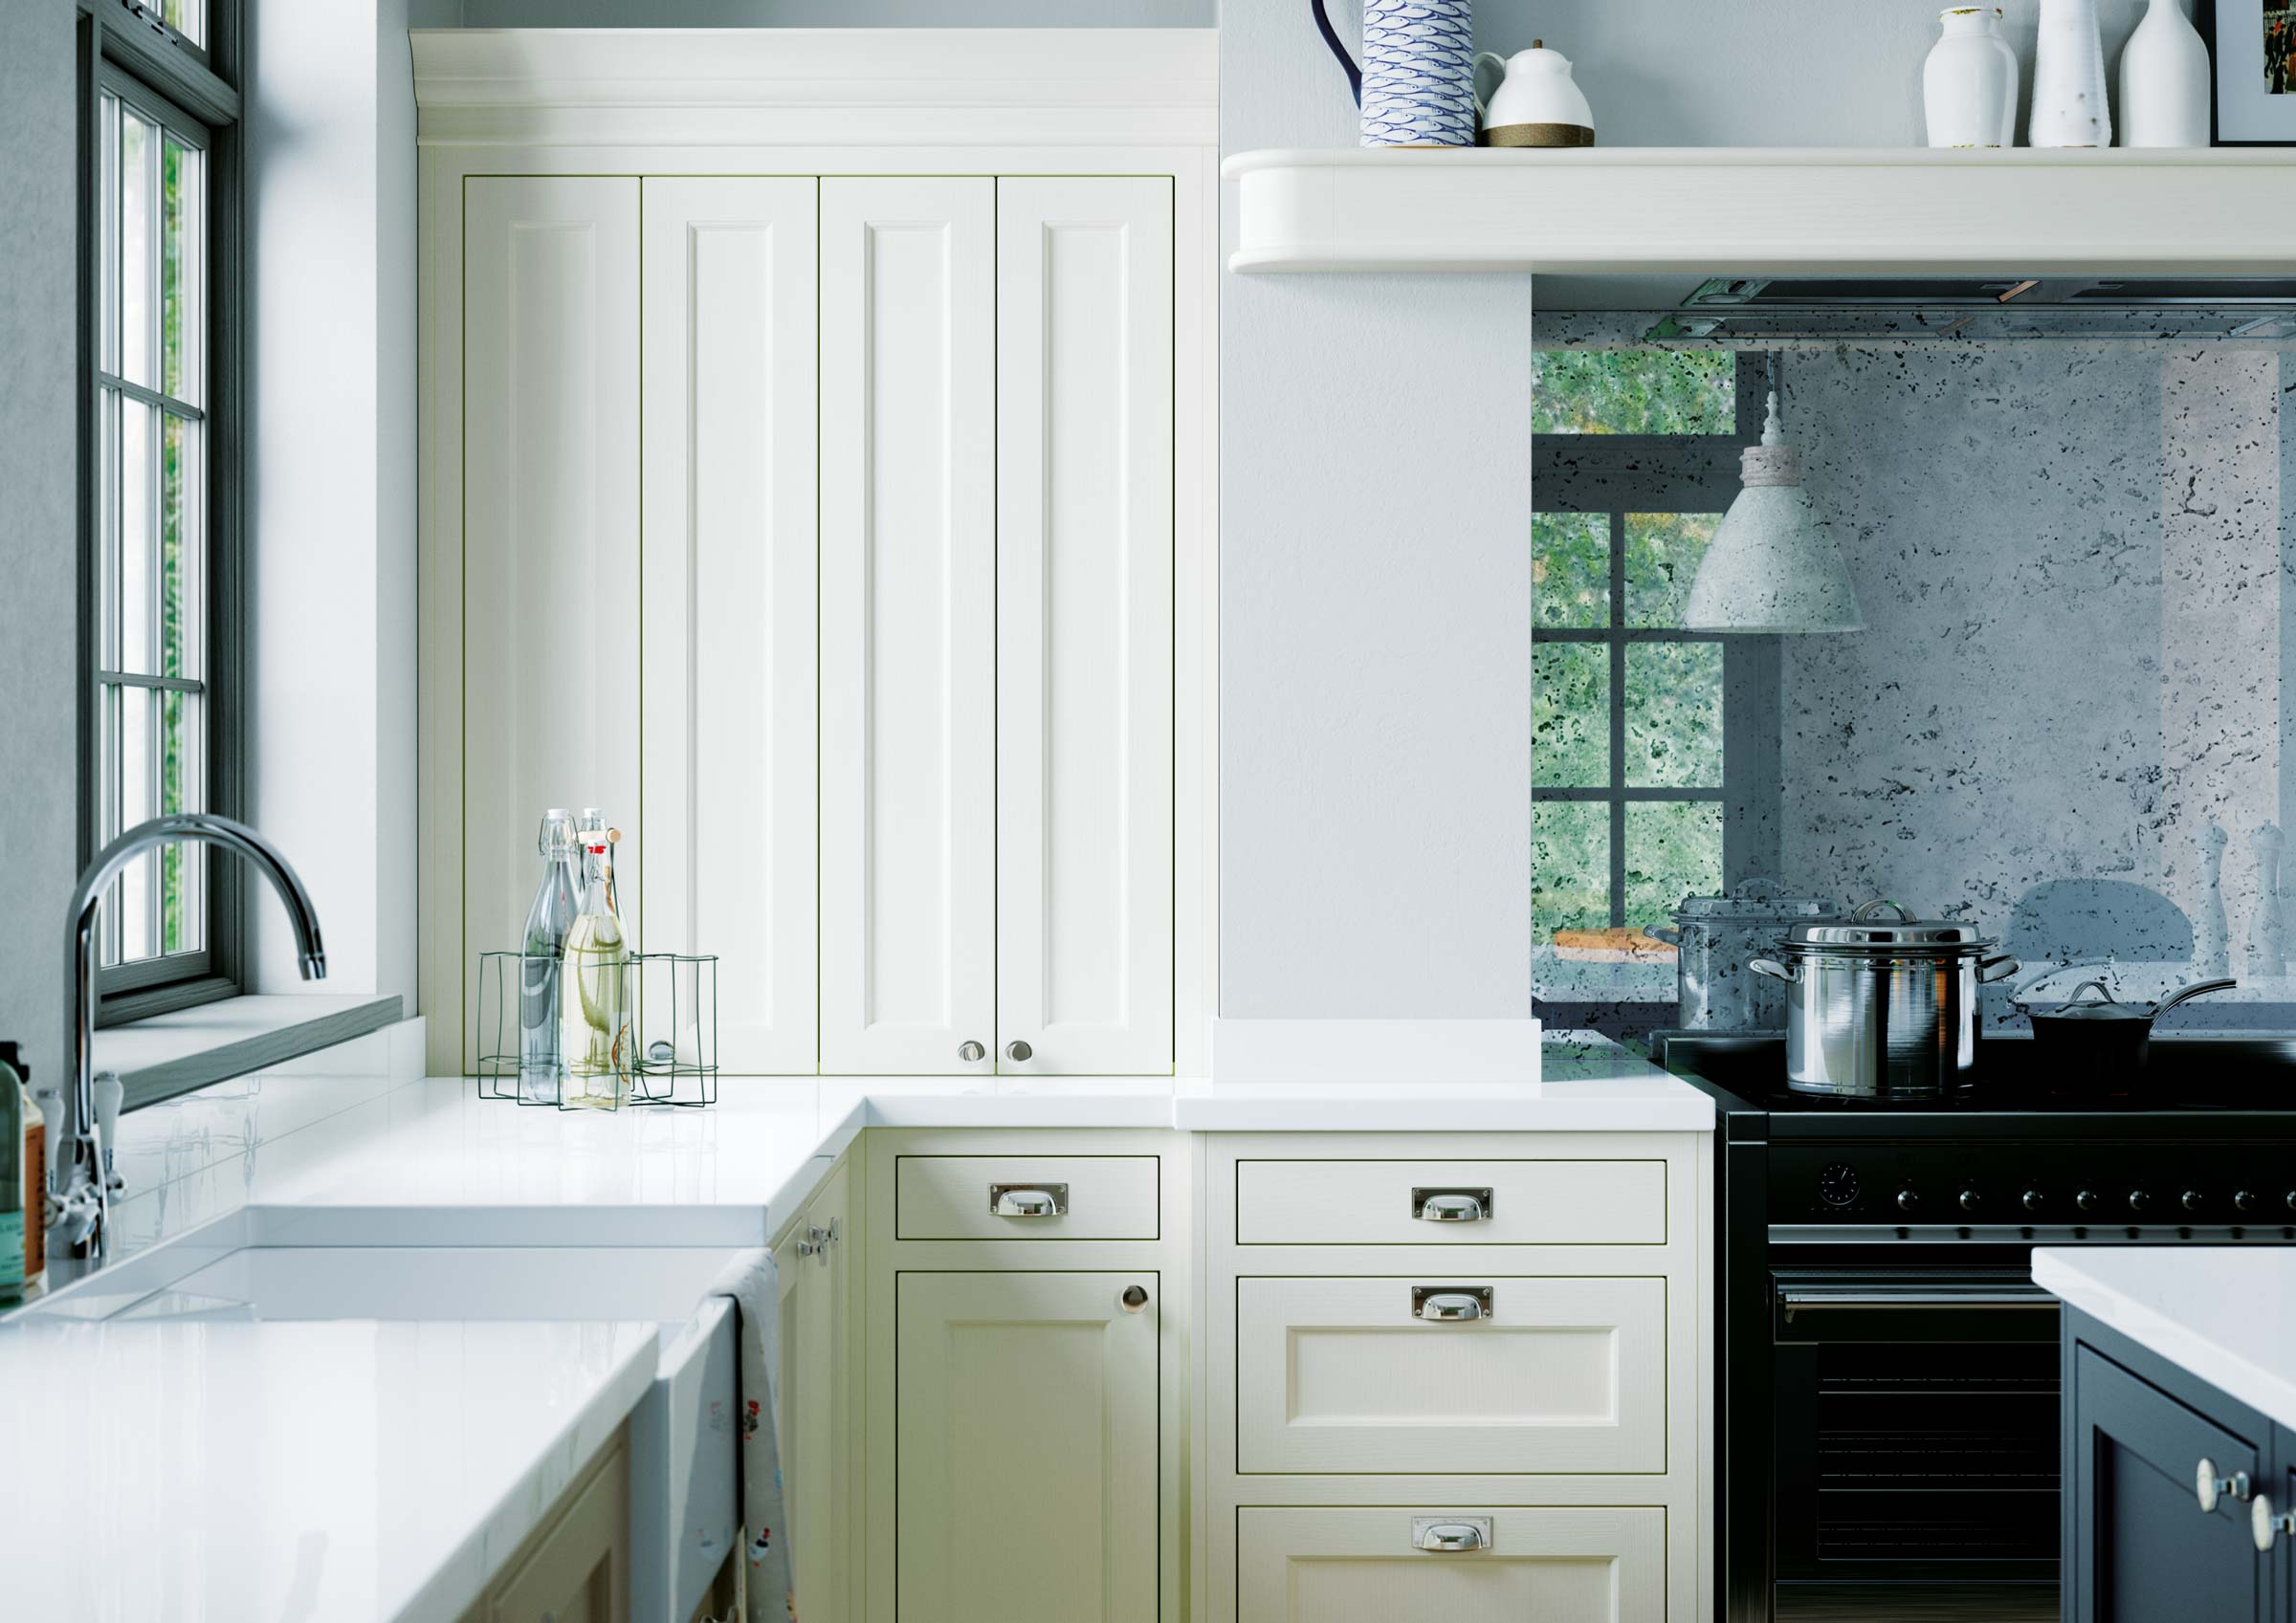 Advantages of In-Frame Kitchen Cabinets